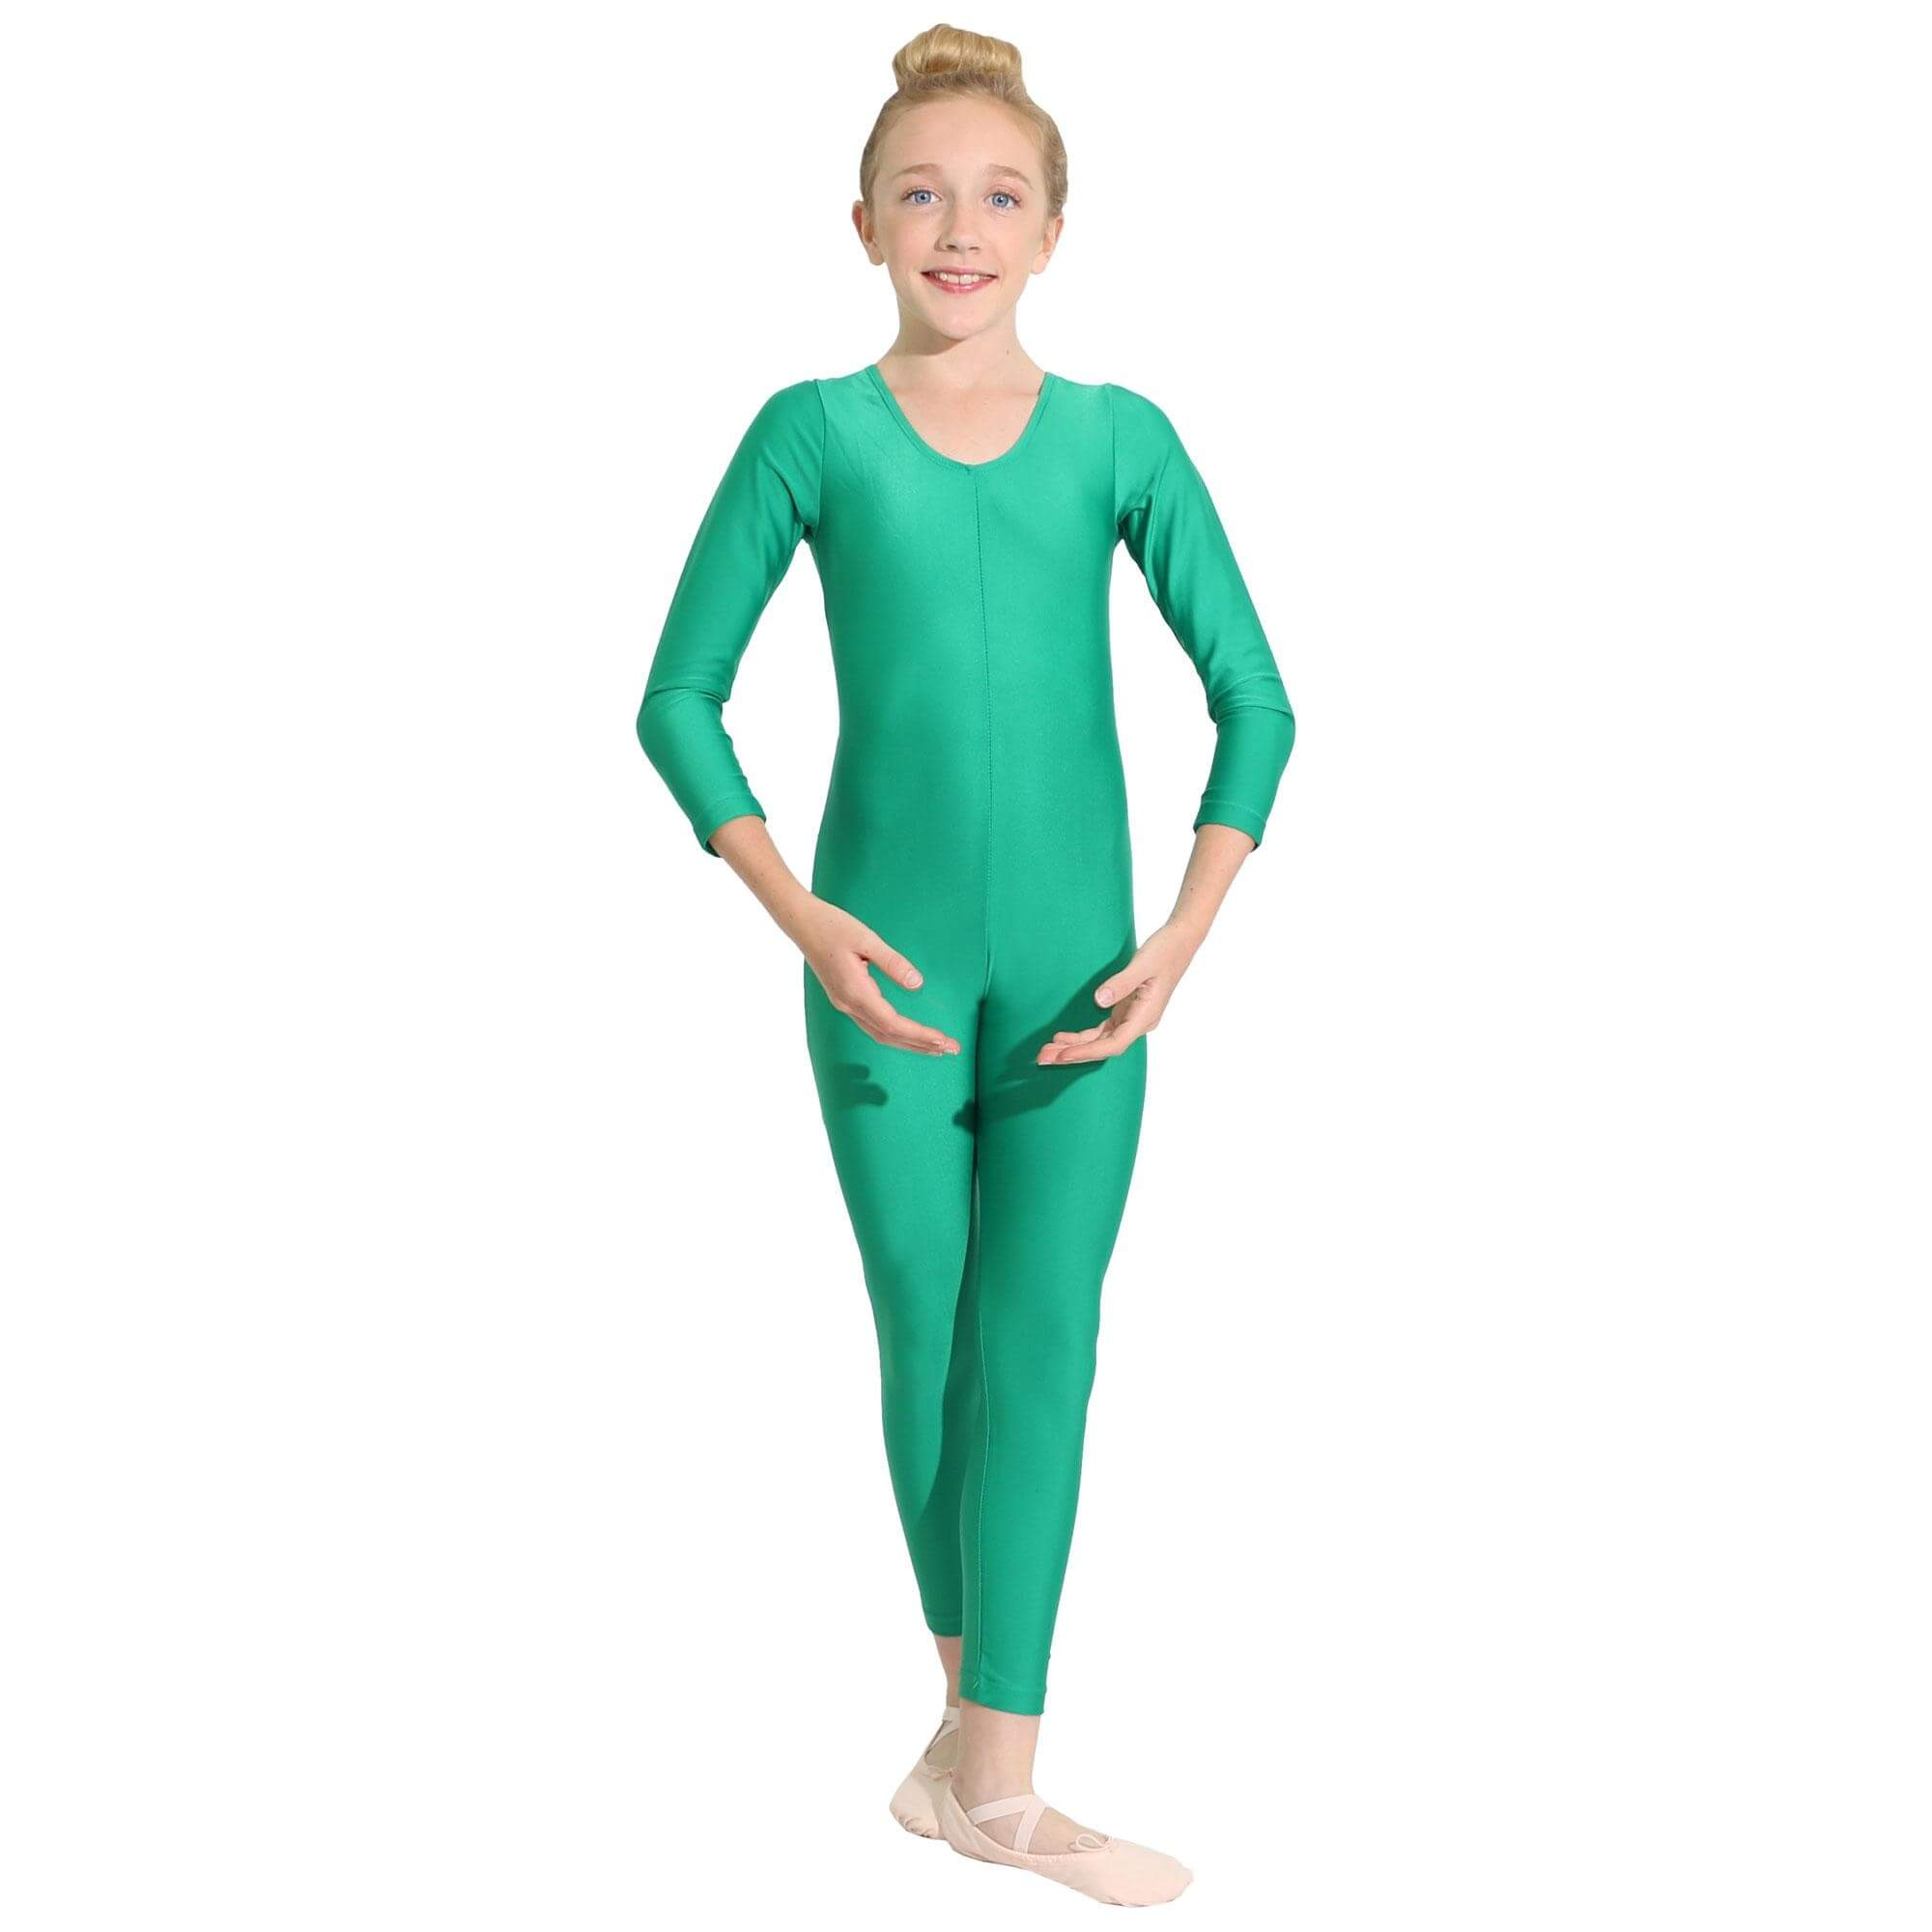 Danzcue Nylon Full Body Child Unitard